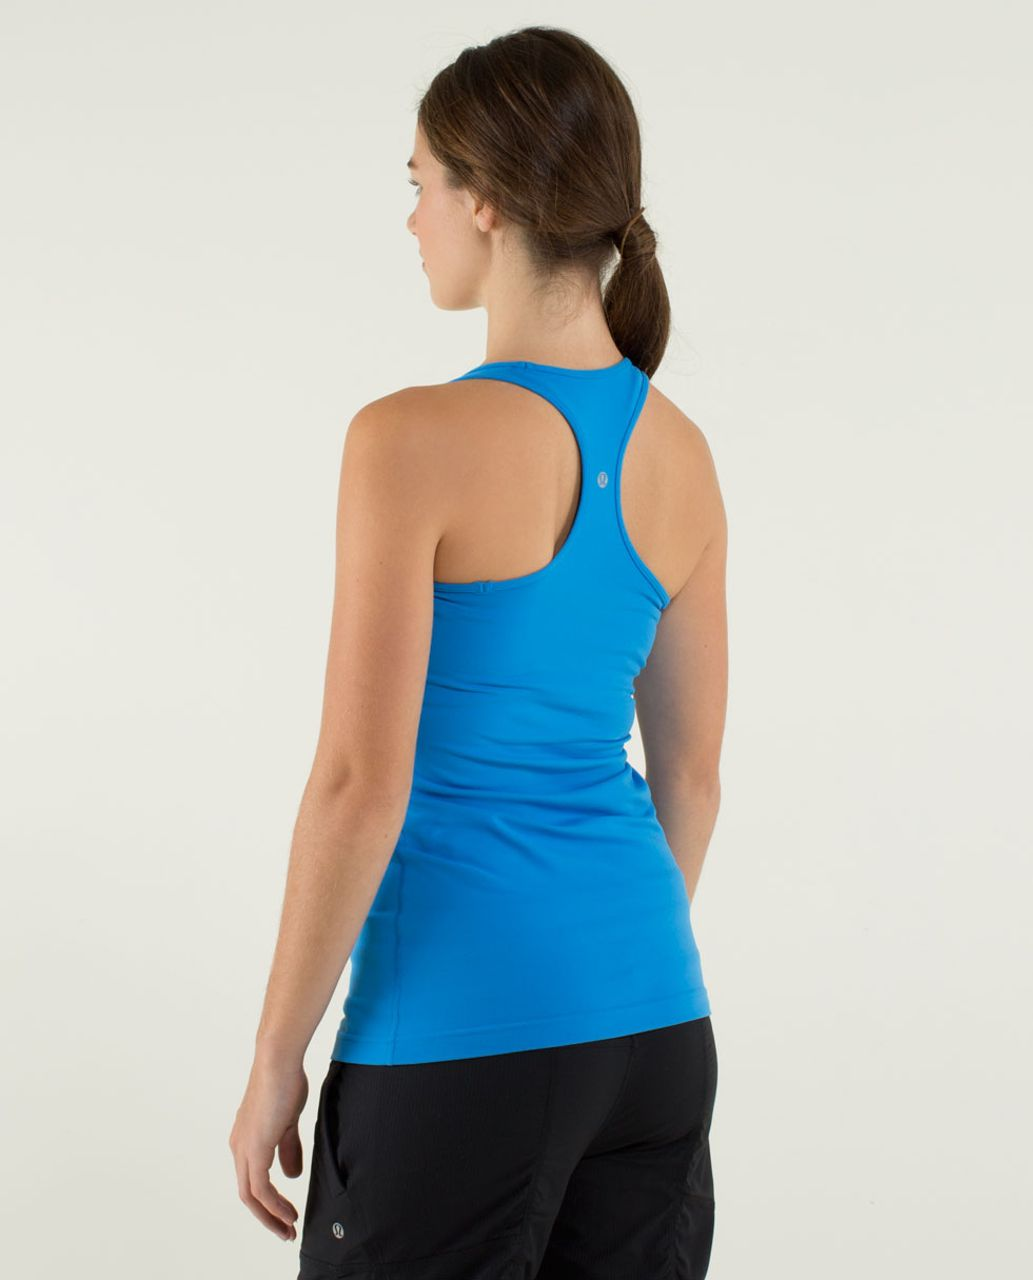 Lululemon Cool Racerback - Cornflower